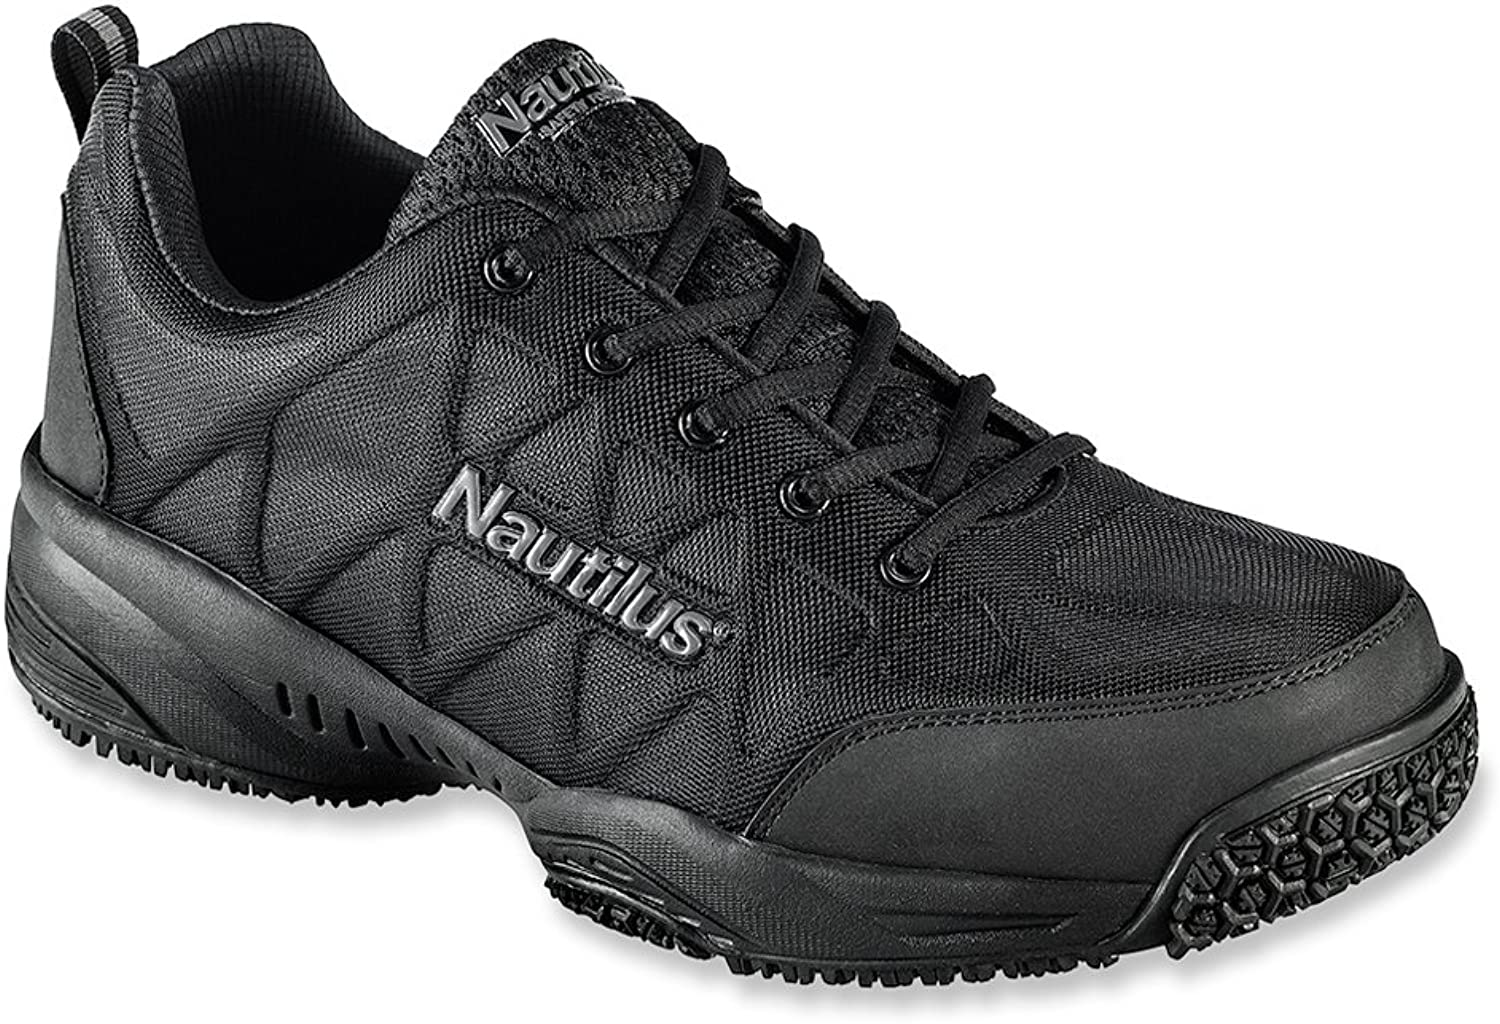 Nautilus 2114 Comp Toe Light Weight Slip Resistant Athletic shoes